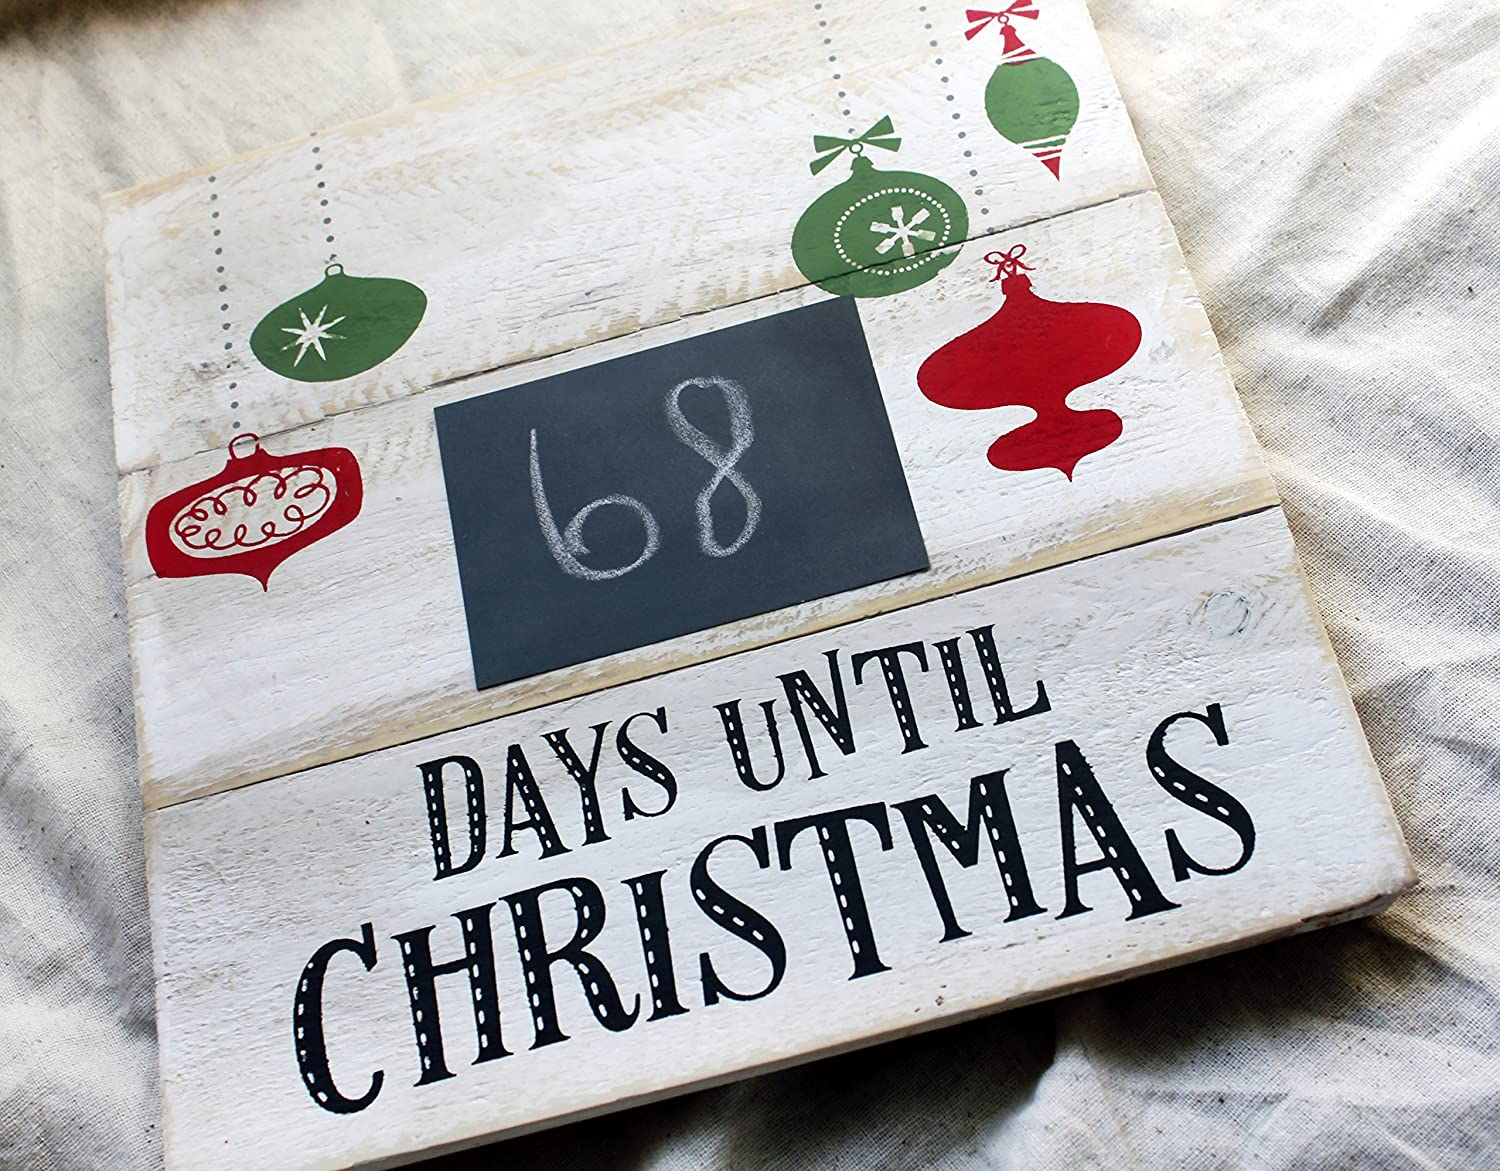 Days Until Christmas Countdown.Amazon Com Christmas Countdown Calendar Days Until